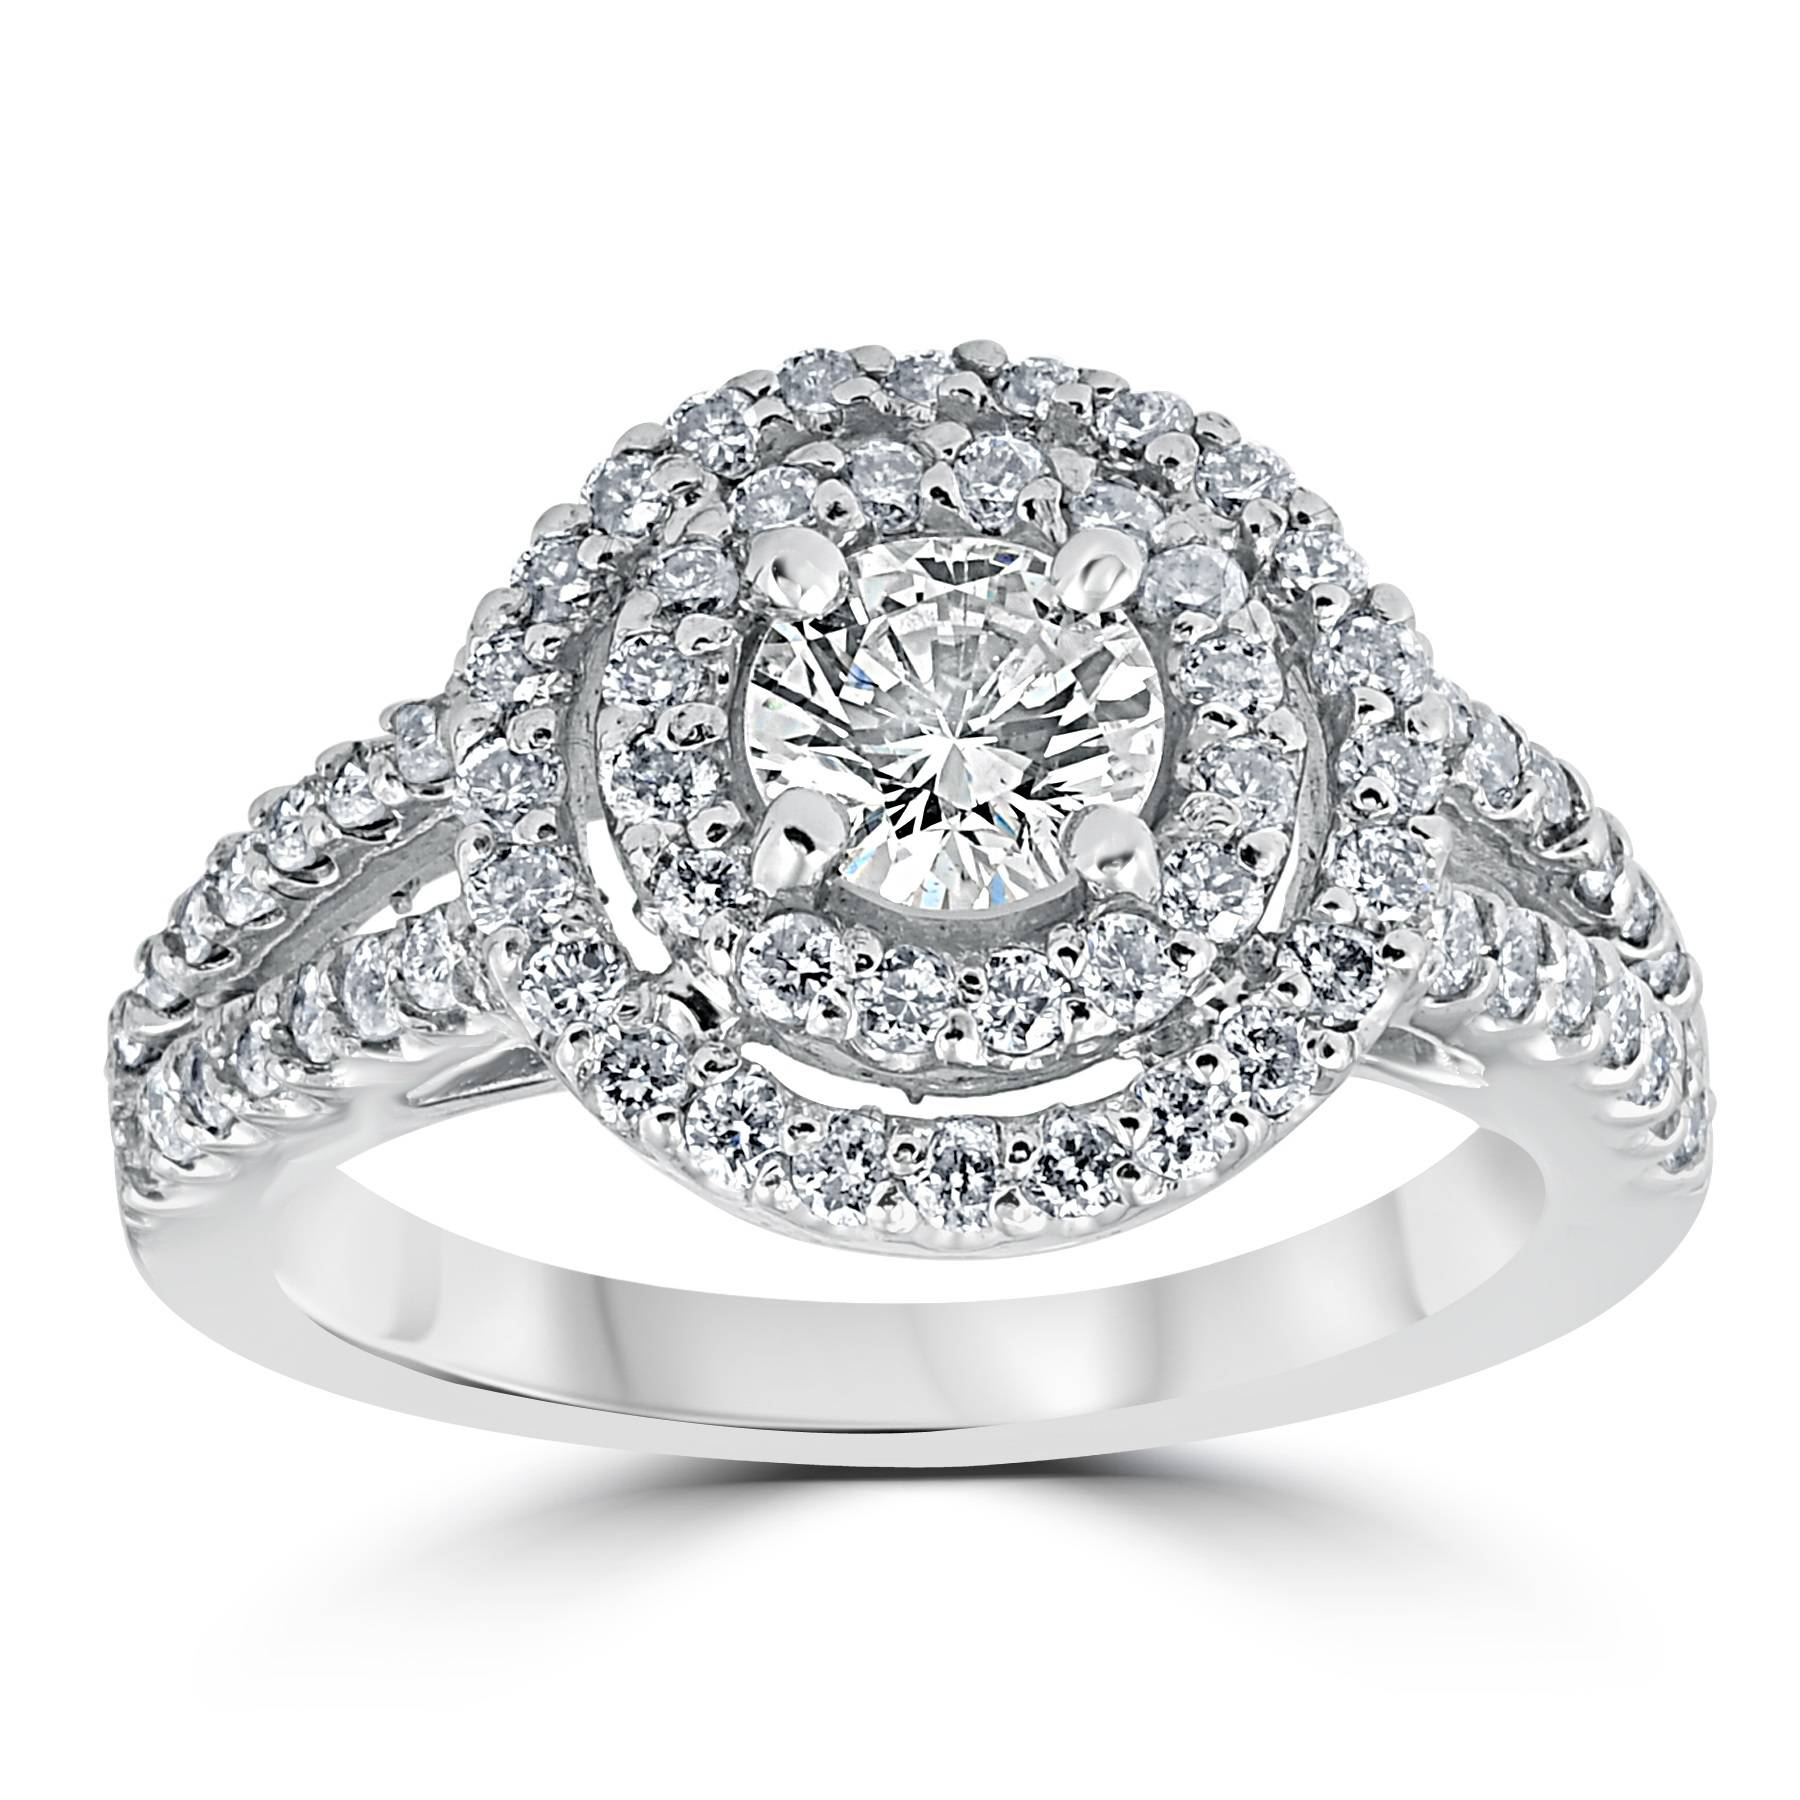 1 1 2 cttw Pave Double Halo Round Brilliant Cut Engagement Ring 14K White Gold by Pompeii3